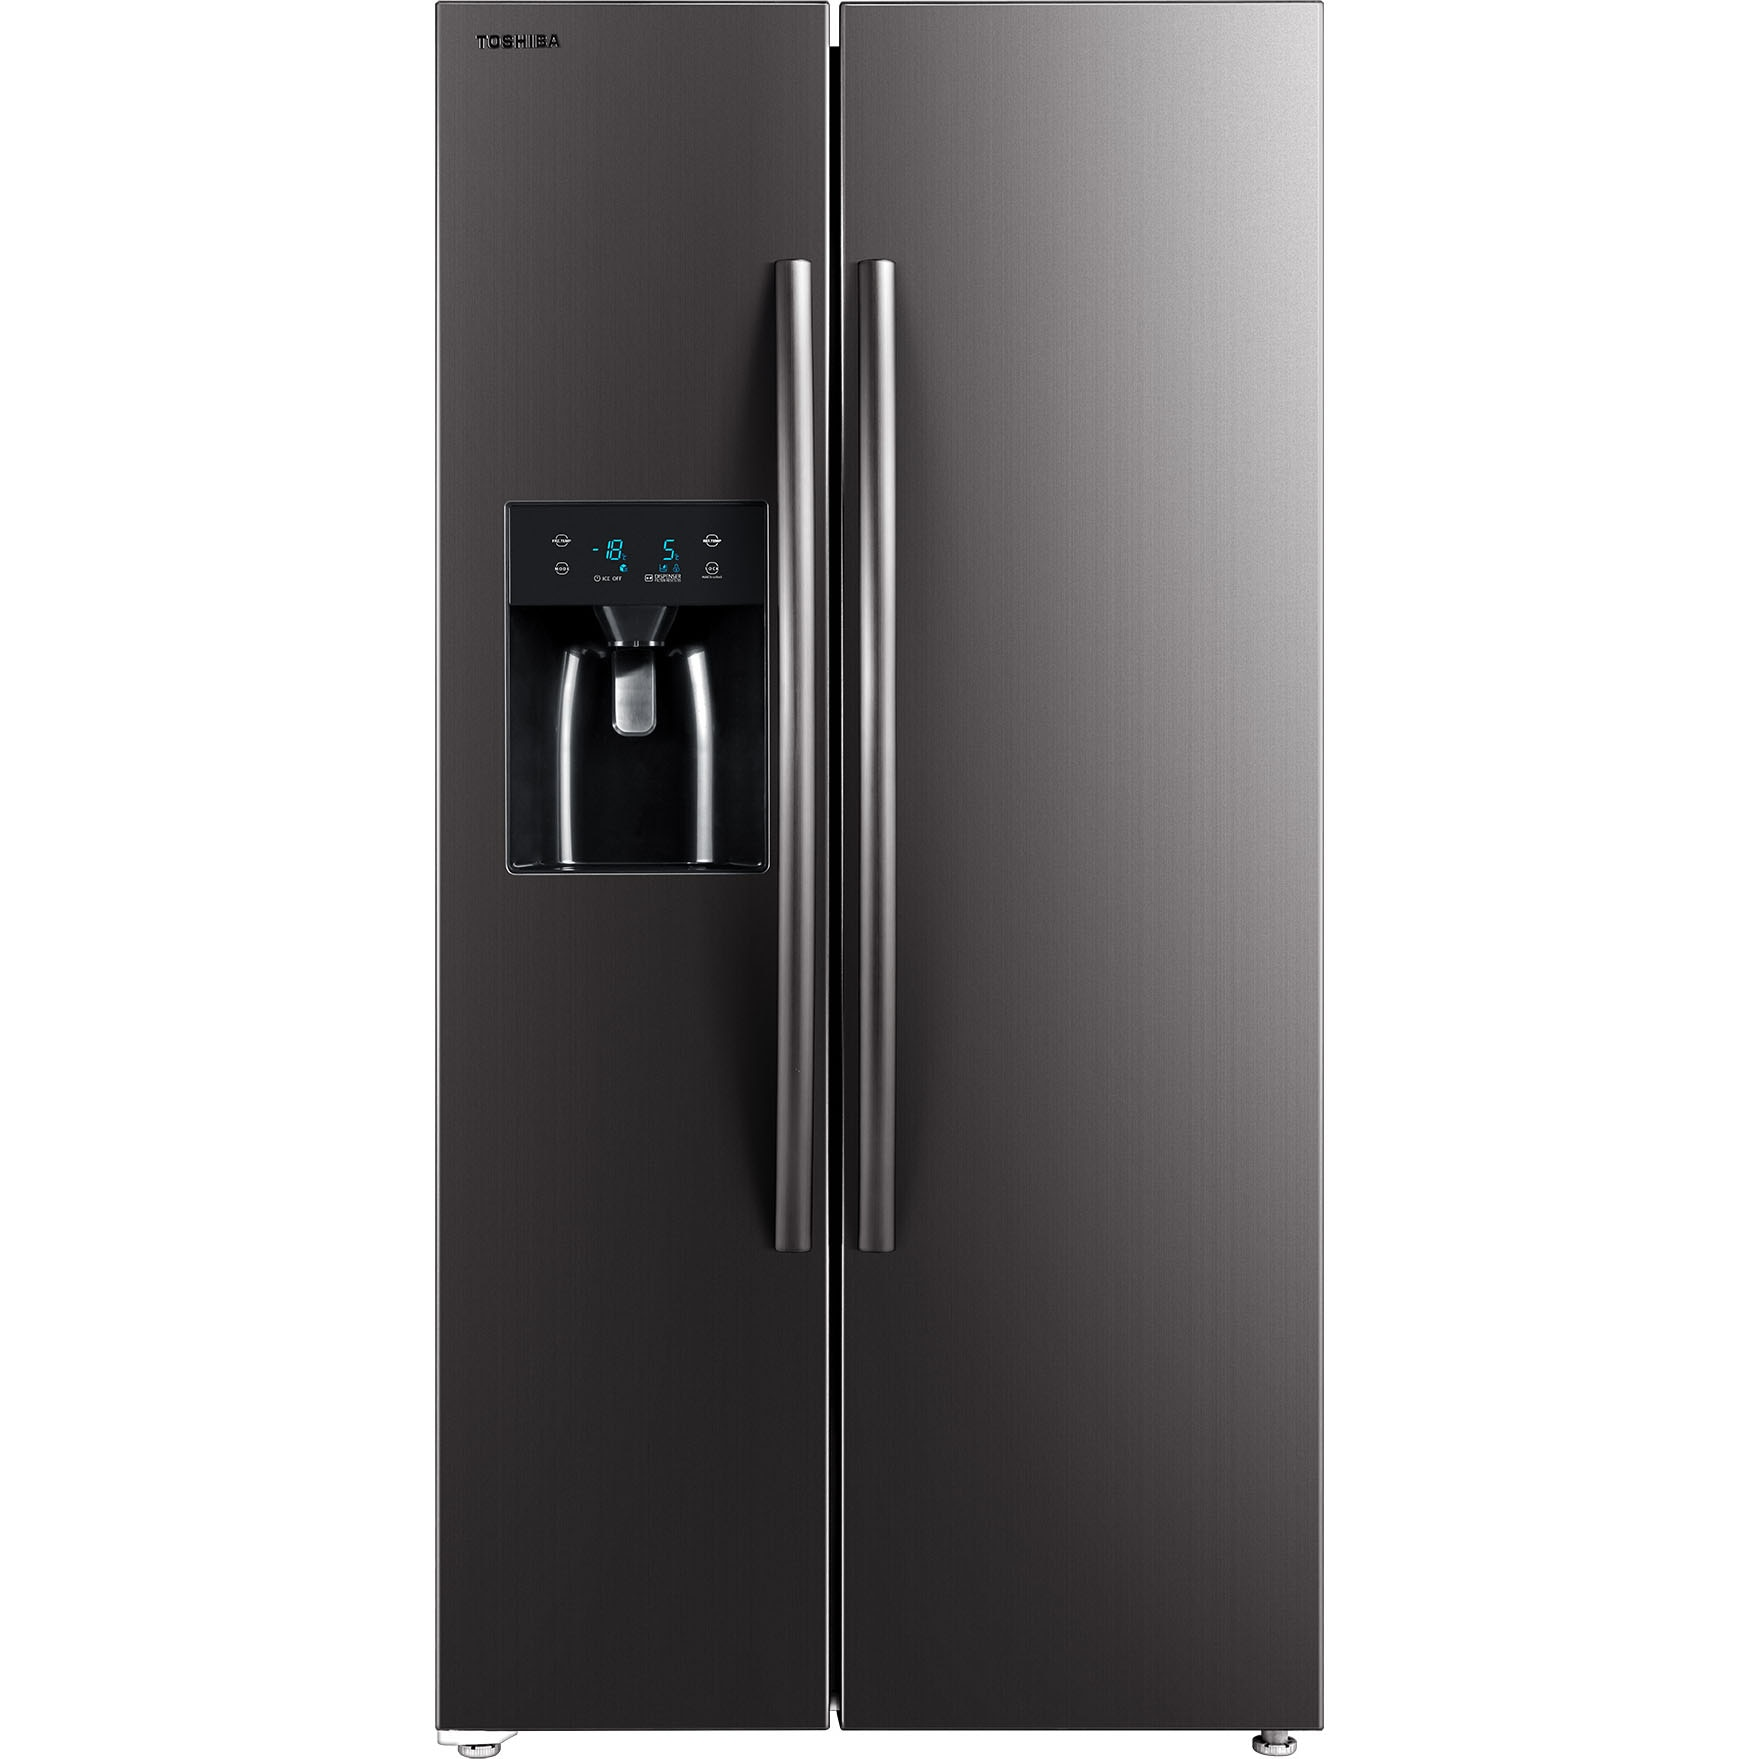 Fotografie Side by side Toshiba GR-RS508WE-PMJ, 490 l ,NoFrost, IceMaker 3in1, Touch control, Dual Inverter,Clasa A++, H 178 cm Gri